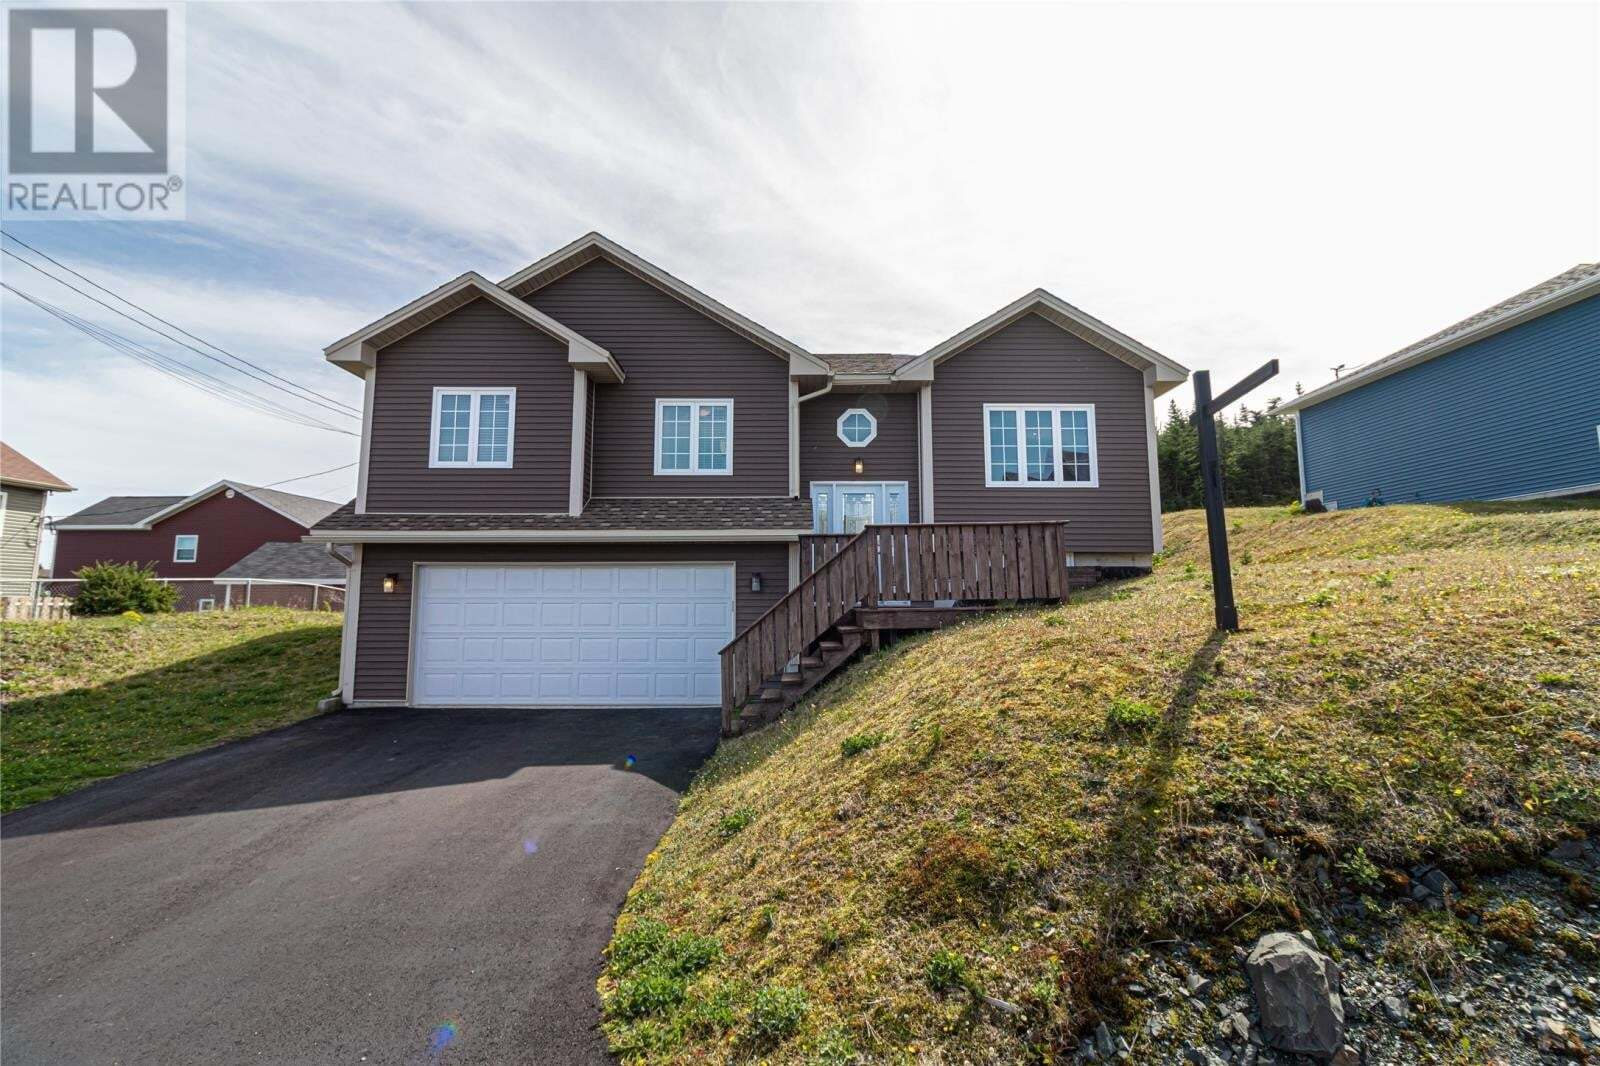 House for sale at 5 Golden Dawn Dr Portugal Cove Newfoundland - MLS: 1221523